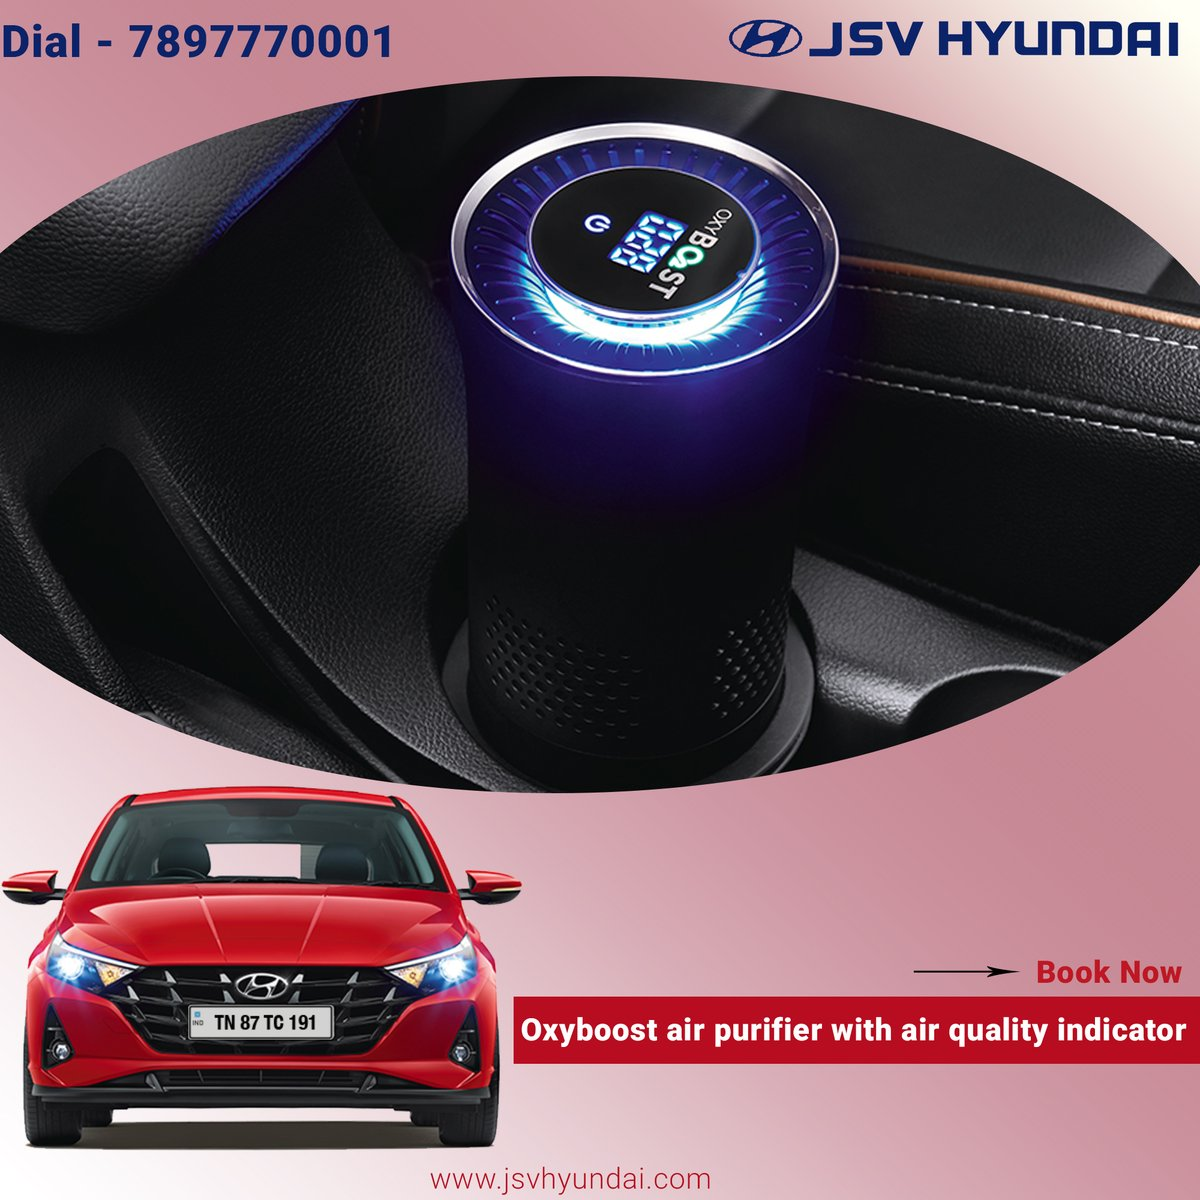 Breathe in fresh air through the air purifier as you cruise along. Air purifier maintains healthy environment inside cabin  #TheAllNewi20 #HappyNavratri #Lucknow #HyundaiCares #JSVHyundaiShowroom #Grandi10NIOS #Elitei20 #NewCreta2020 #Automobile #Venue #HyundaiVenue https://t.co/bxRztUUxHH